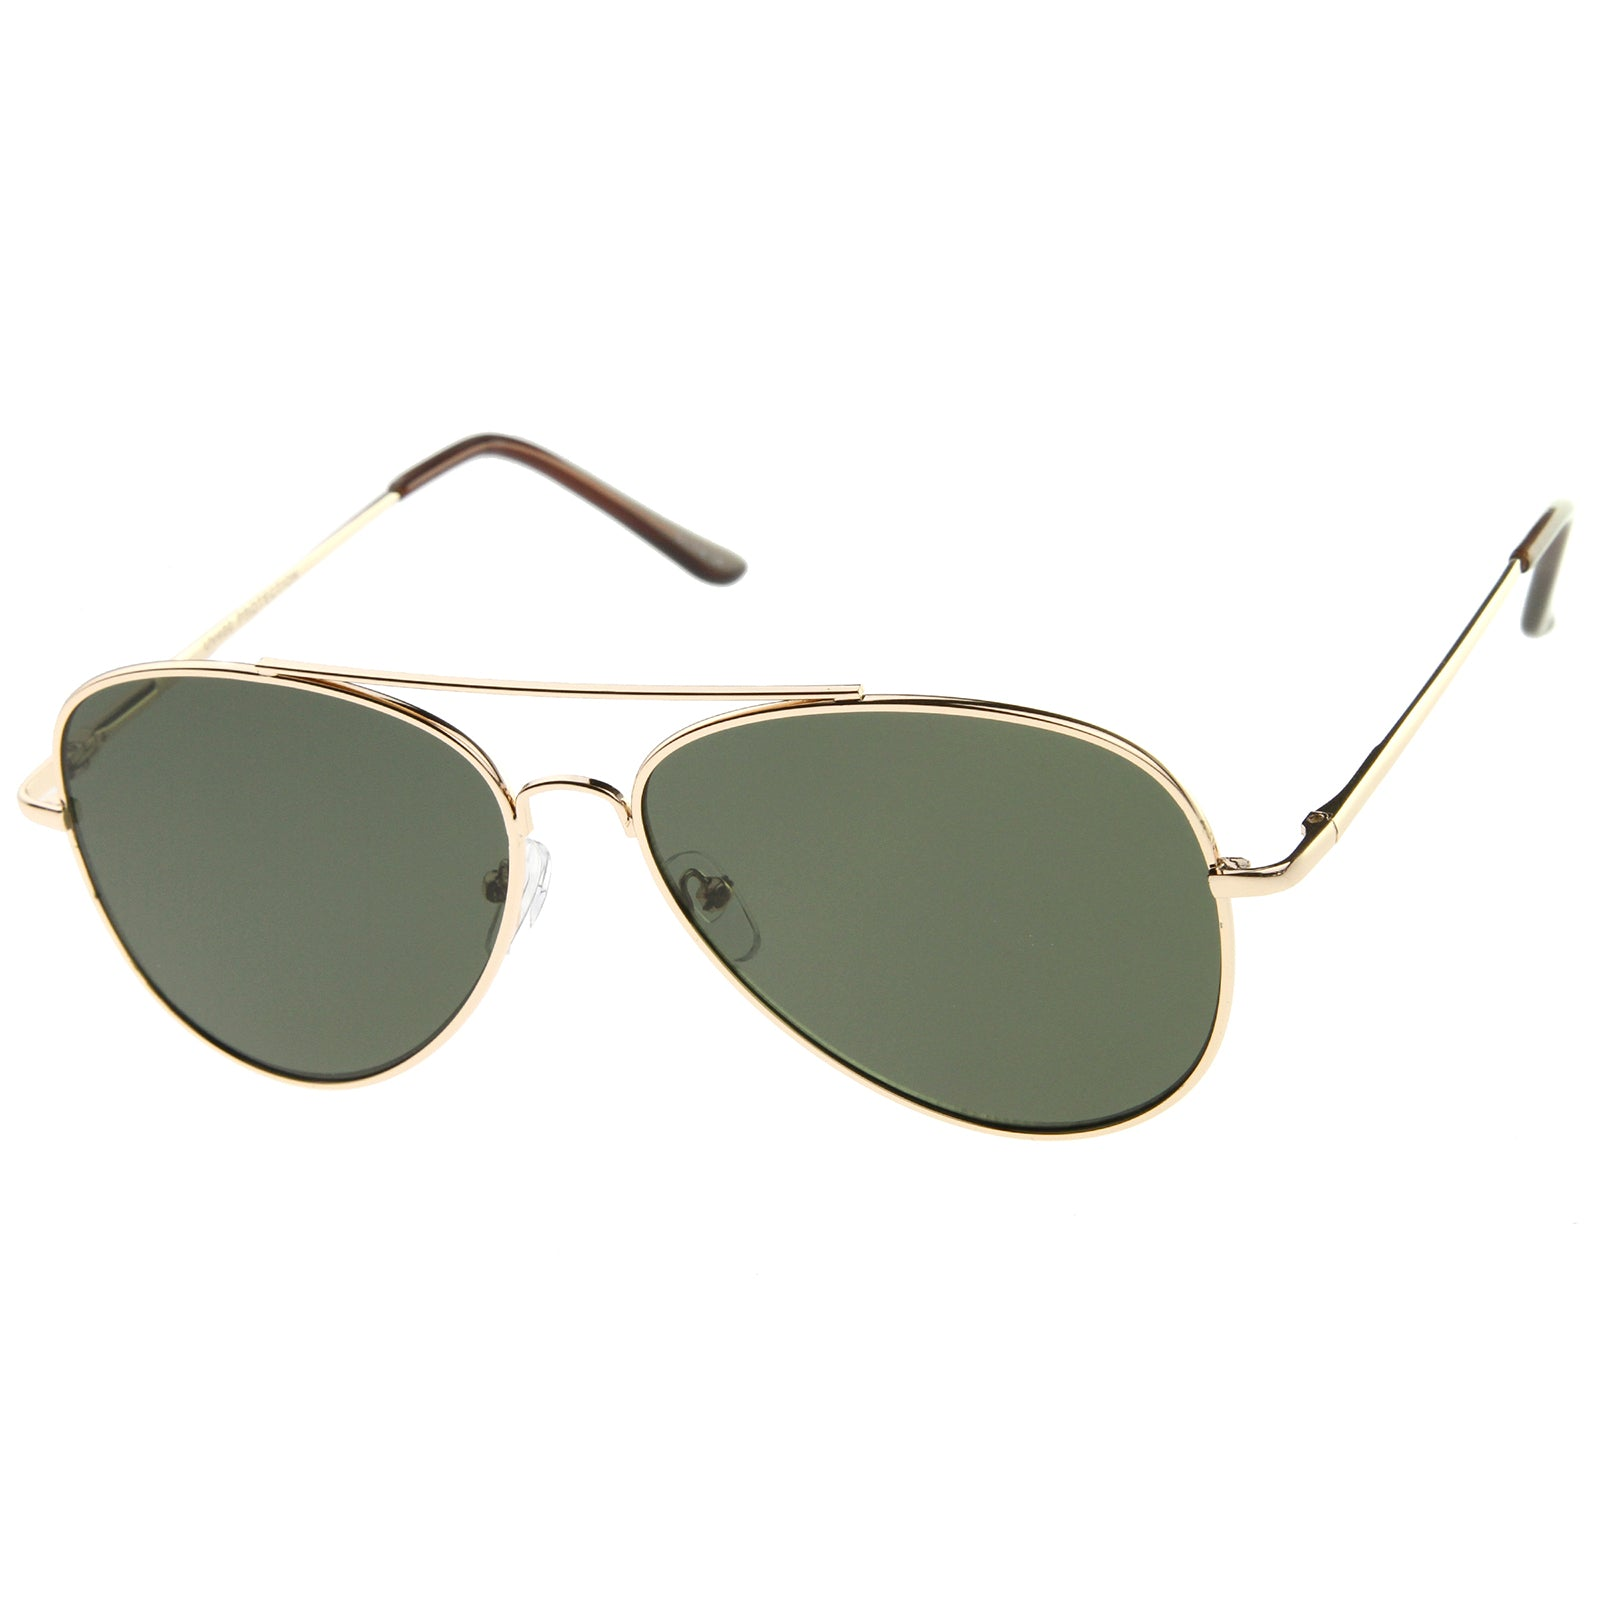 Large Classic Full Metal Teardrop Flat Lens Aviator Sunglasses 60mm - sunglass.la